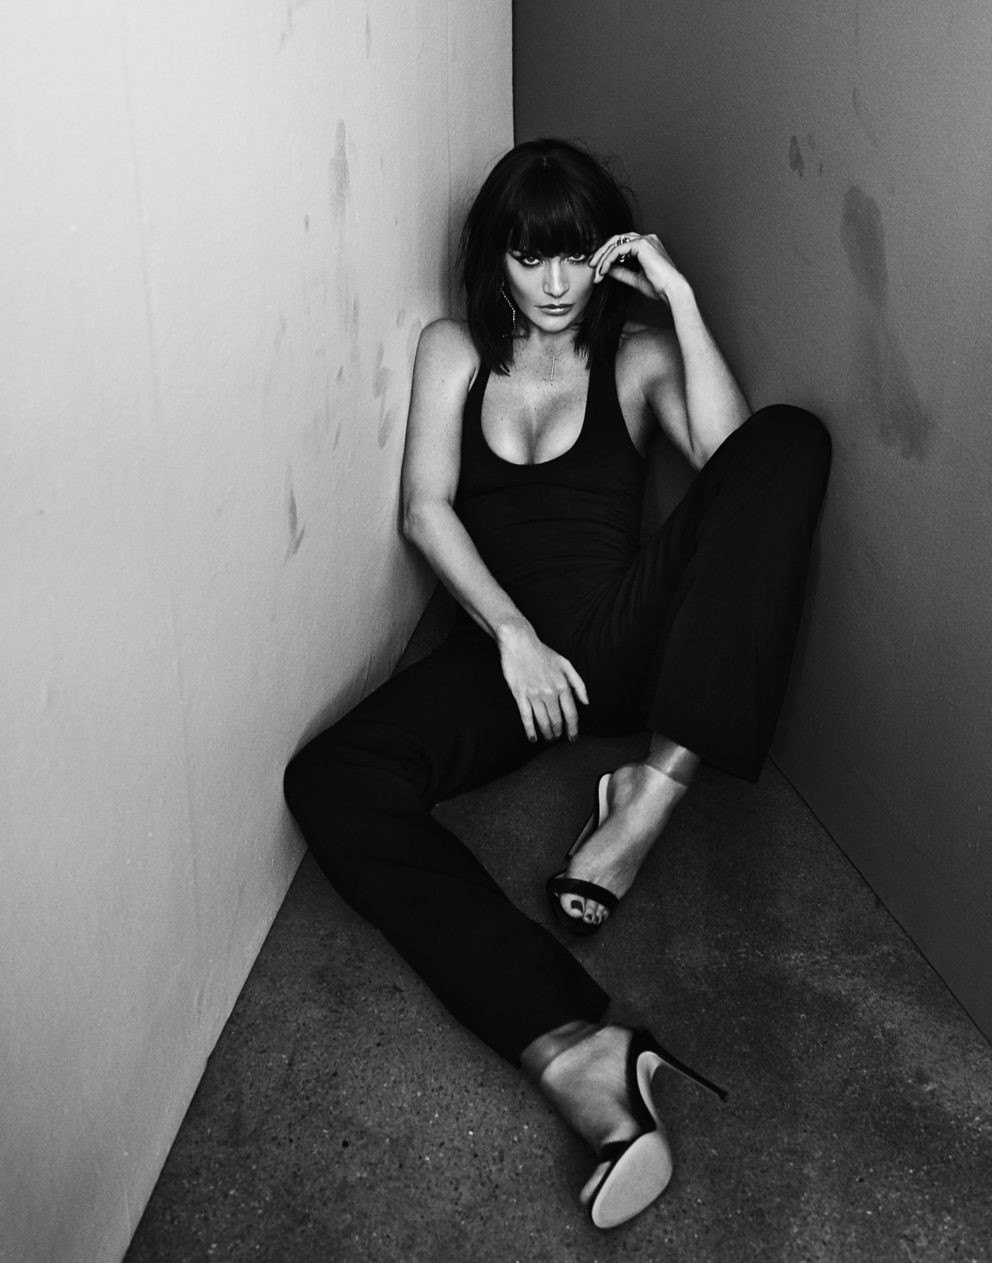 171128 Helena Christensen By Christian Hogstedt 03